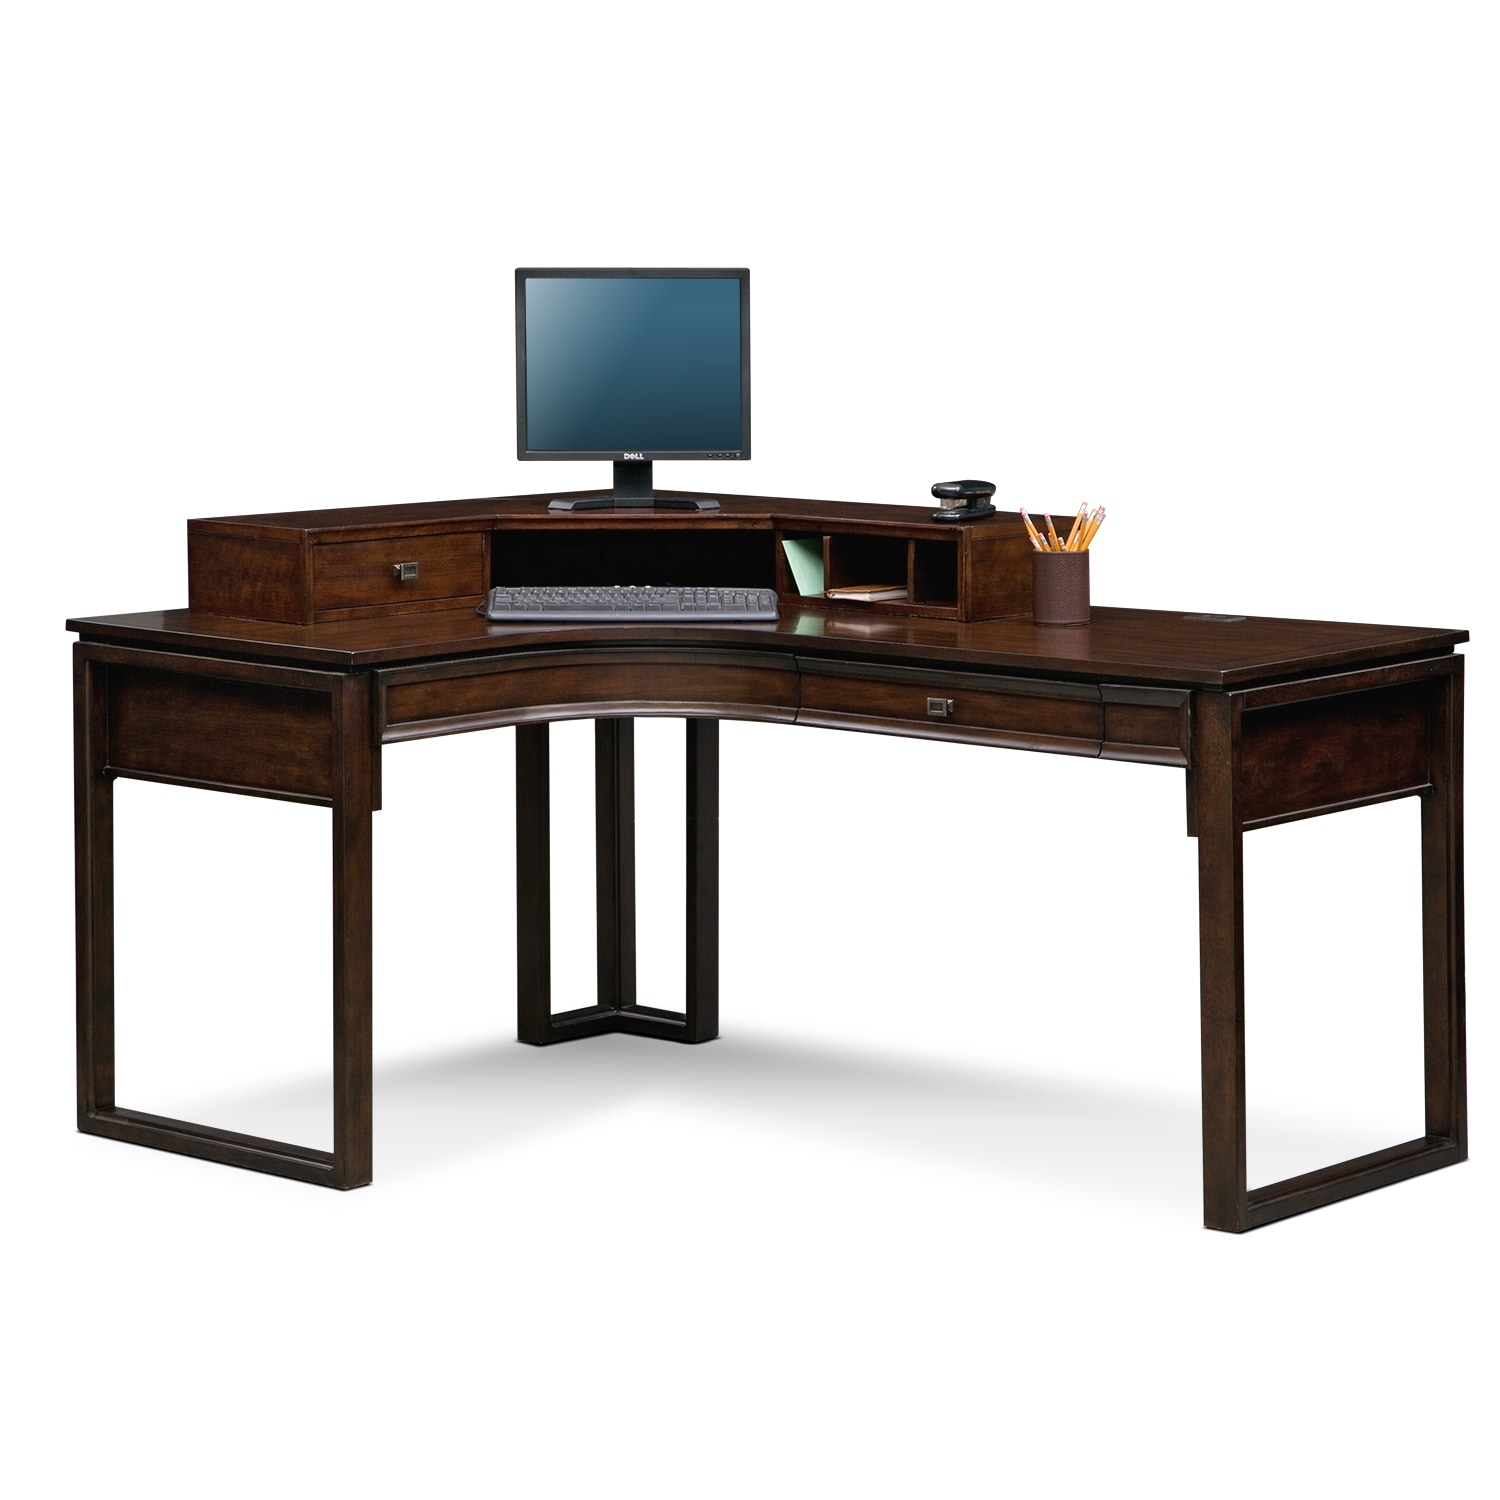 Superb img of Medina Home Office L Shaped Desk with Hutch Value City Furniture with #946737 color and 1500x1500 pixels